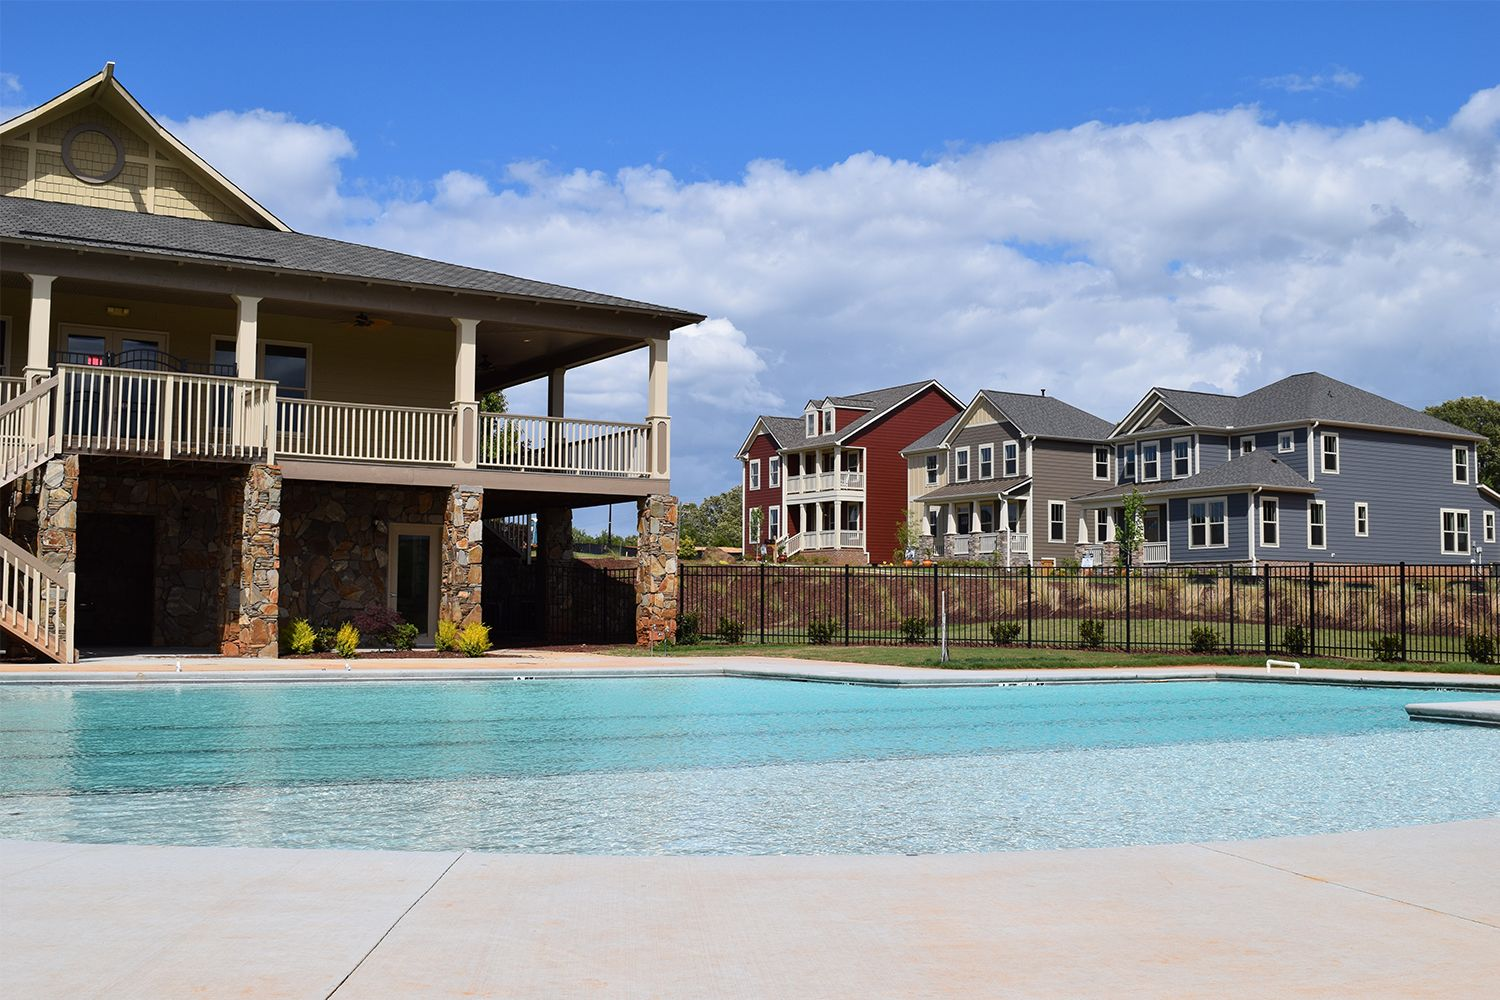 Single Family for Sale at Raymore 759 Rose Penny Lane Spartanburg, South Carolina 29301 United States